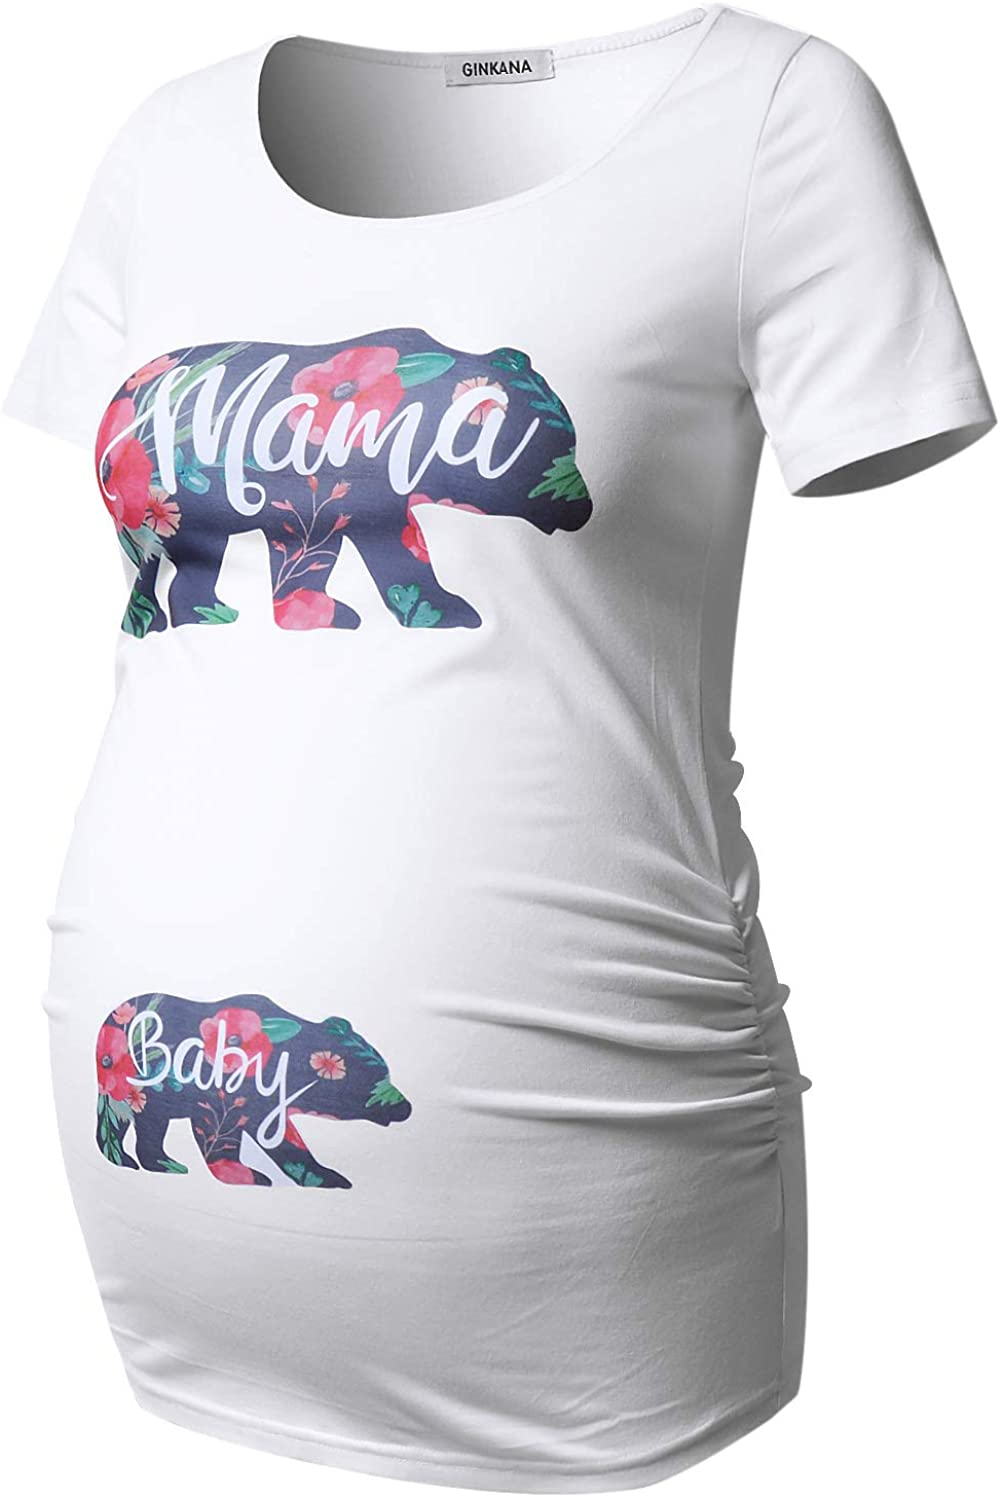 GINKANA Short Sleeve Maternity Tops Shirts Floral Ruched Sides Casual Mama Pregnancy Blouses Clothes